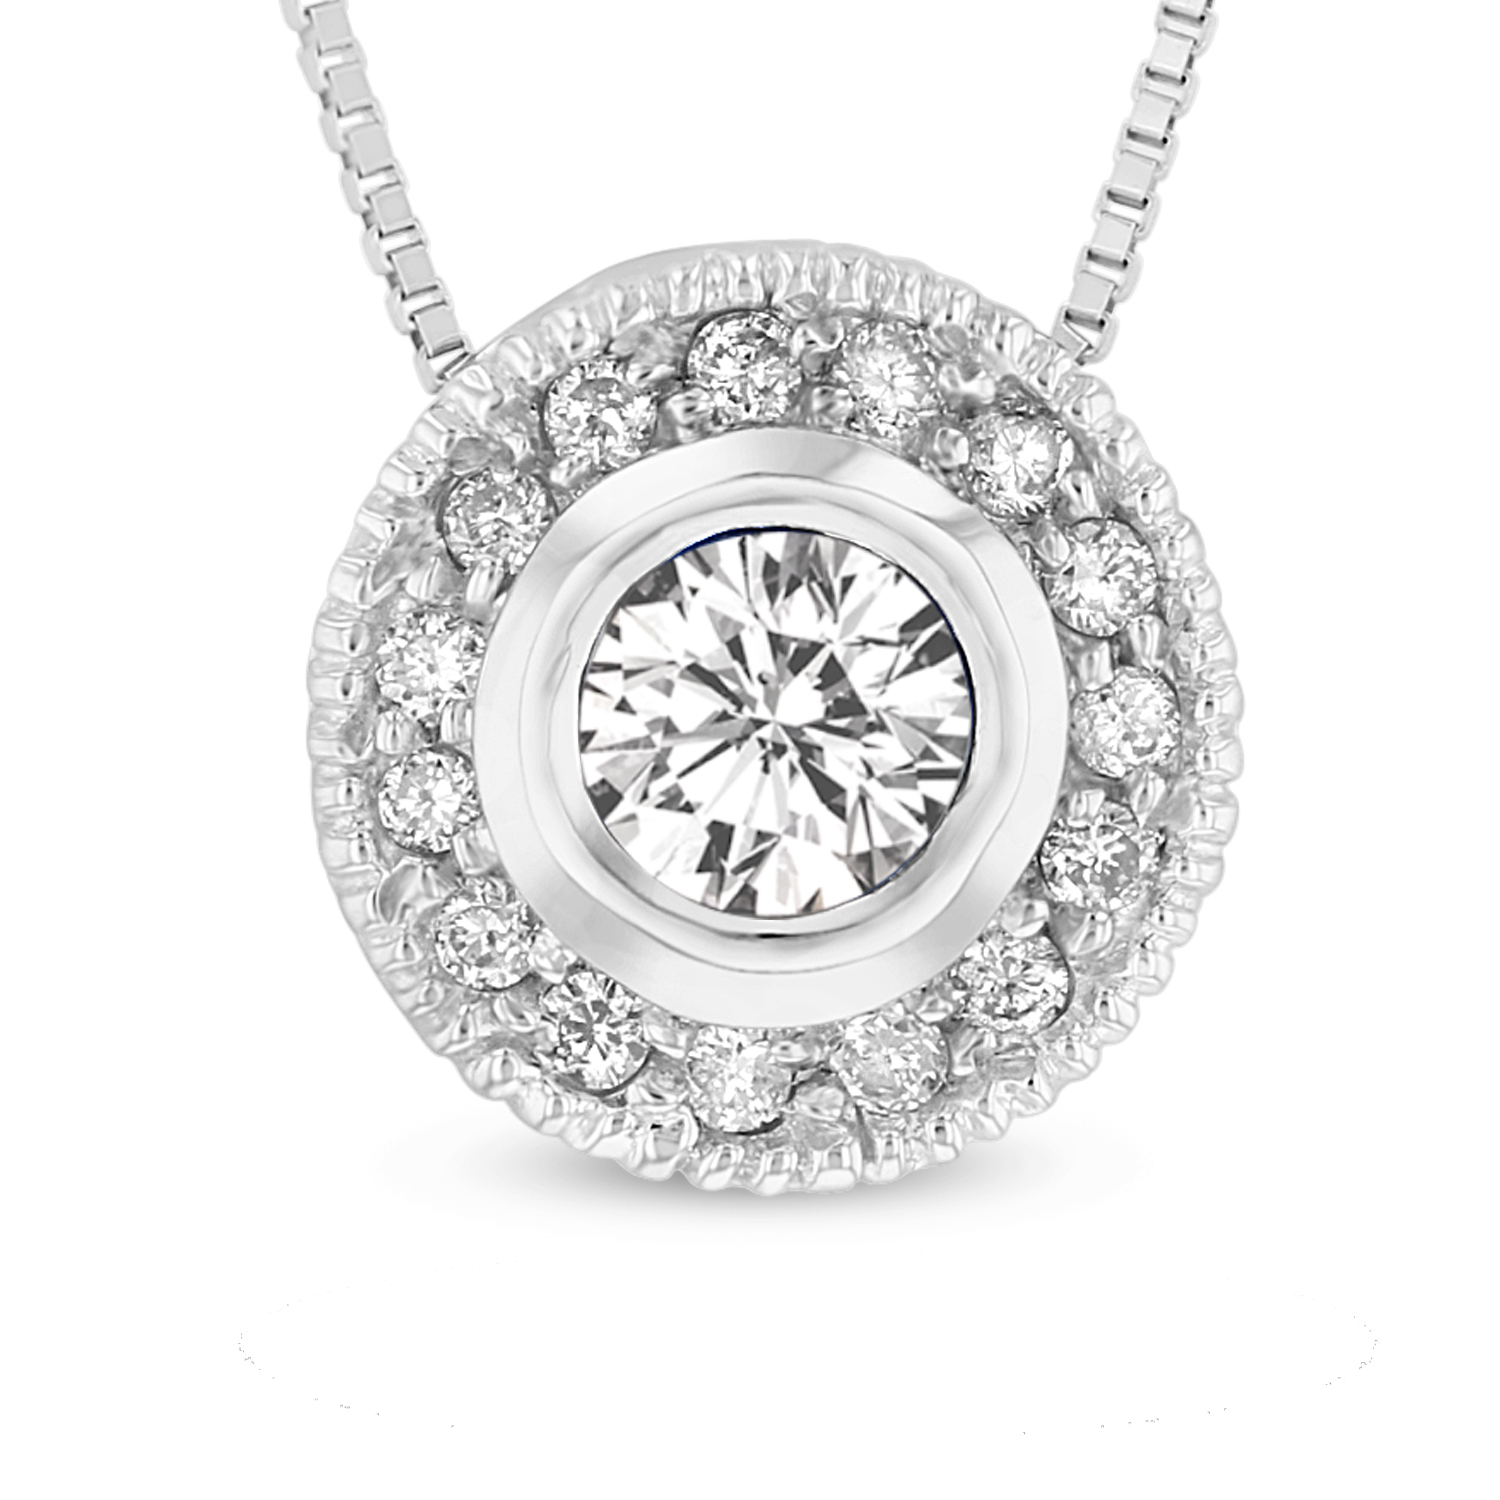 View 14k Gold Pendant with 0.30ct of diamonds. 16 inch Cable chain included